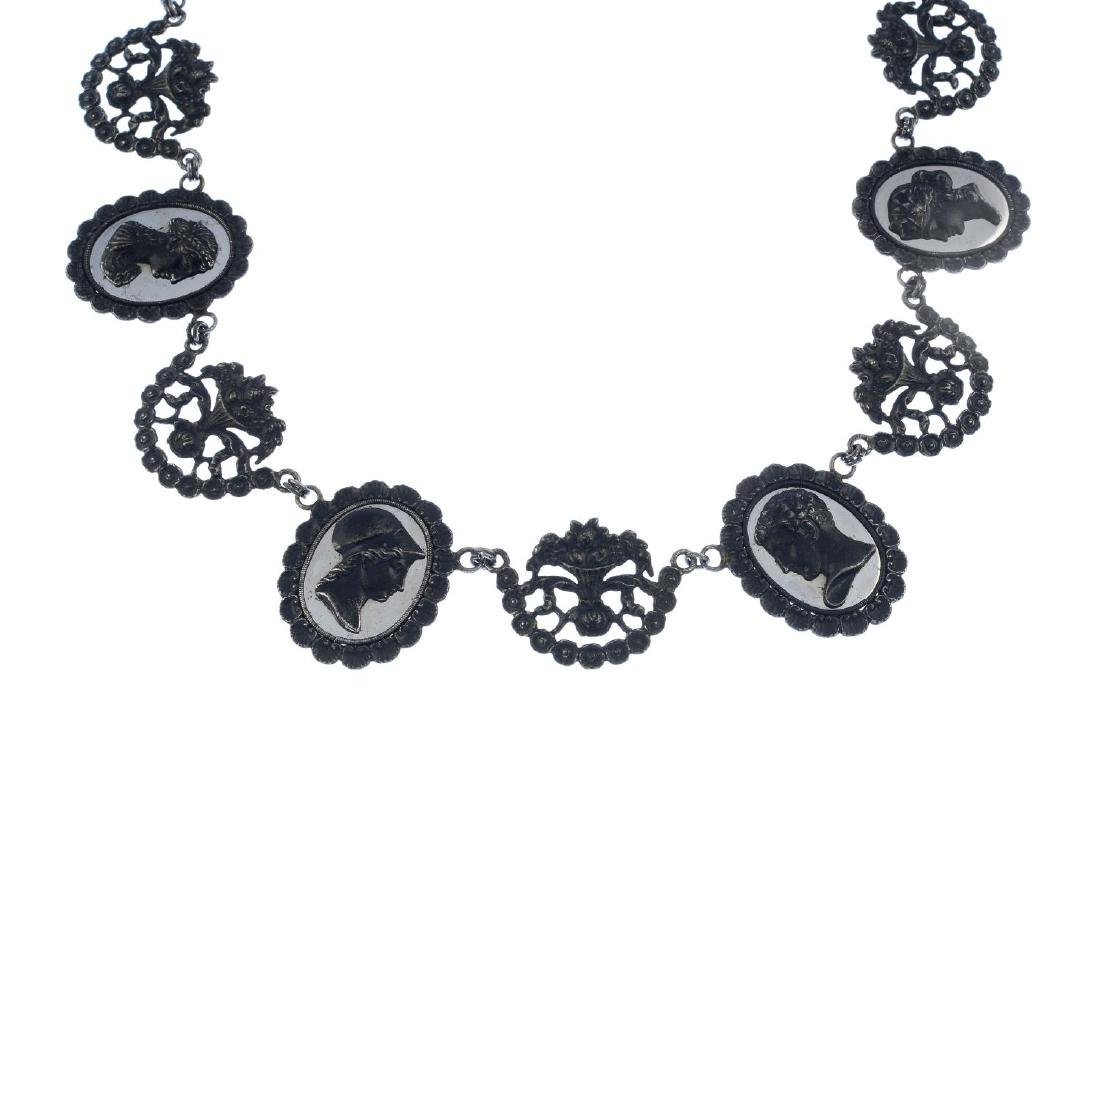 An early 20th century Berlin iron necklace. Comprising